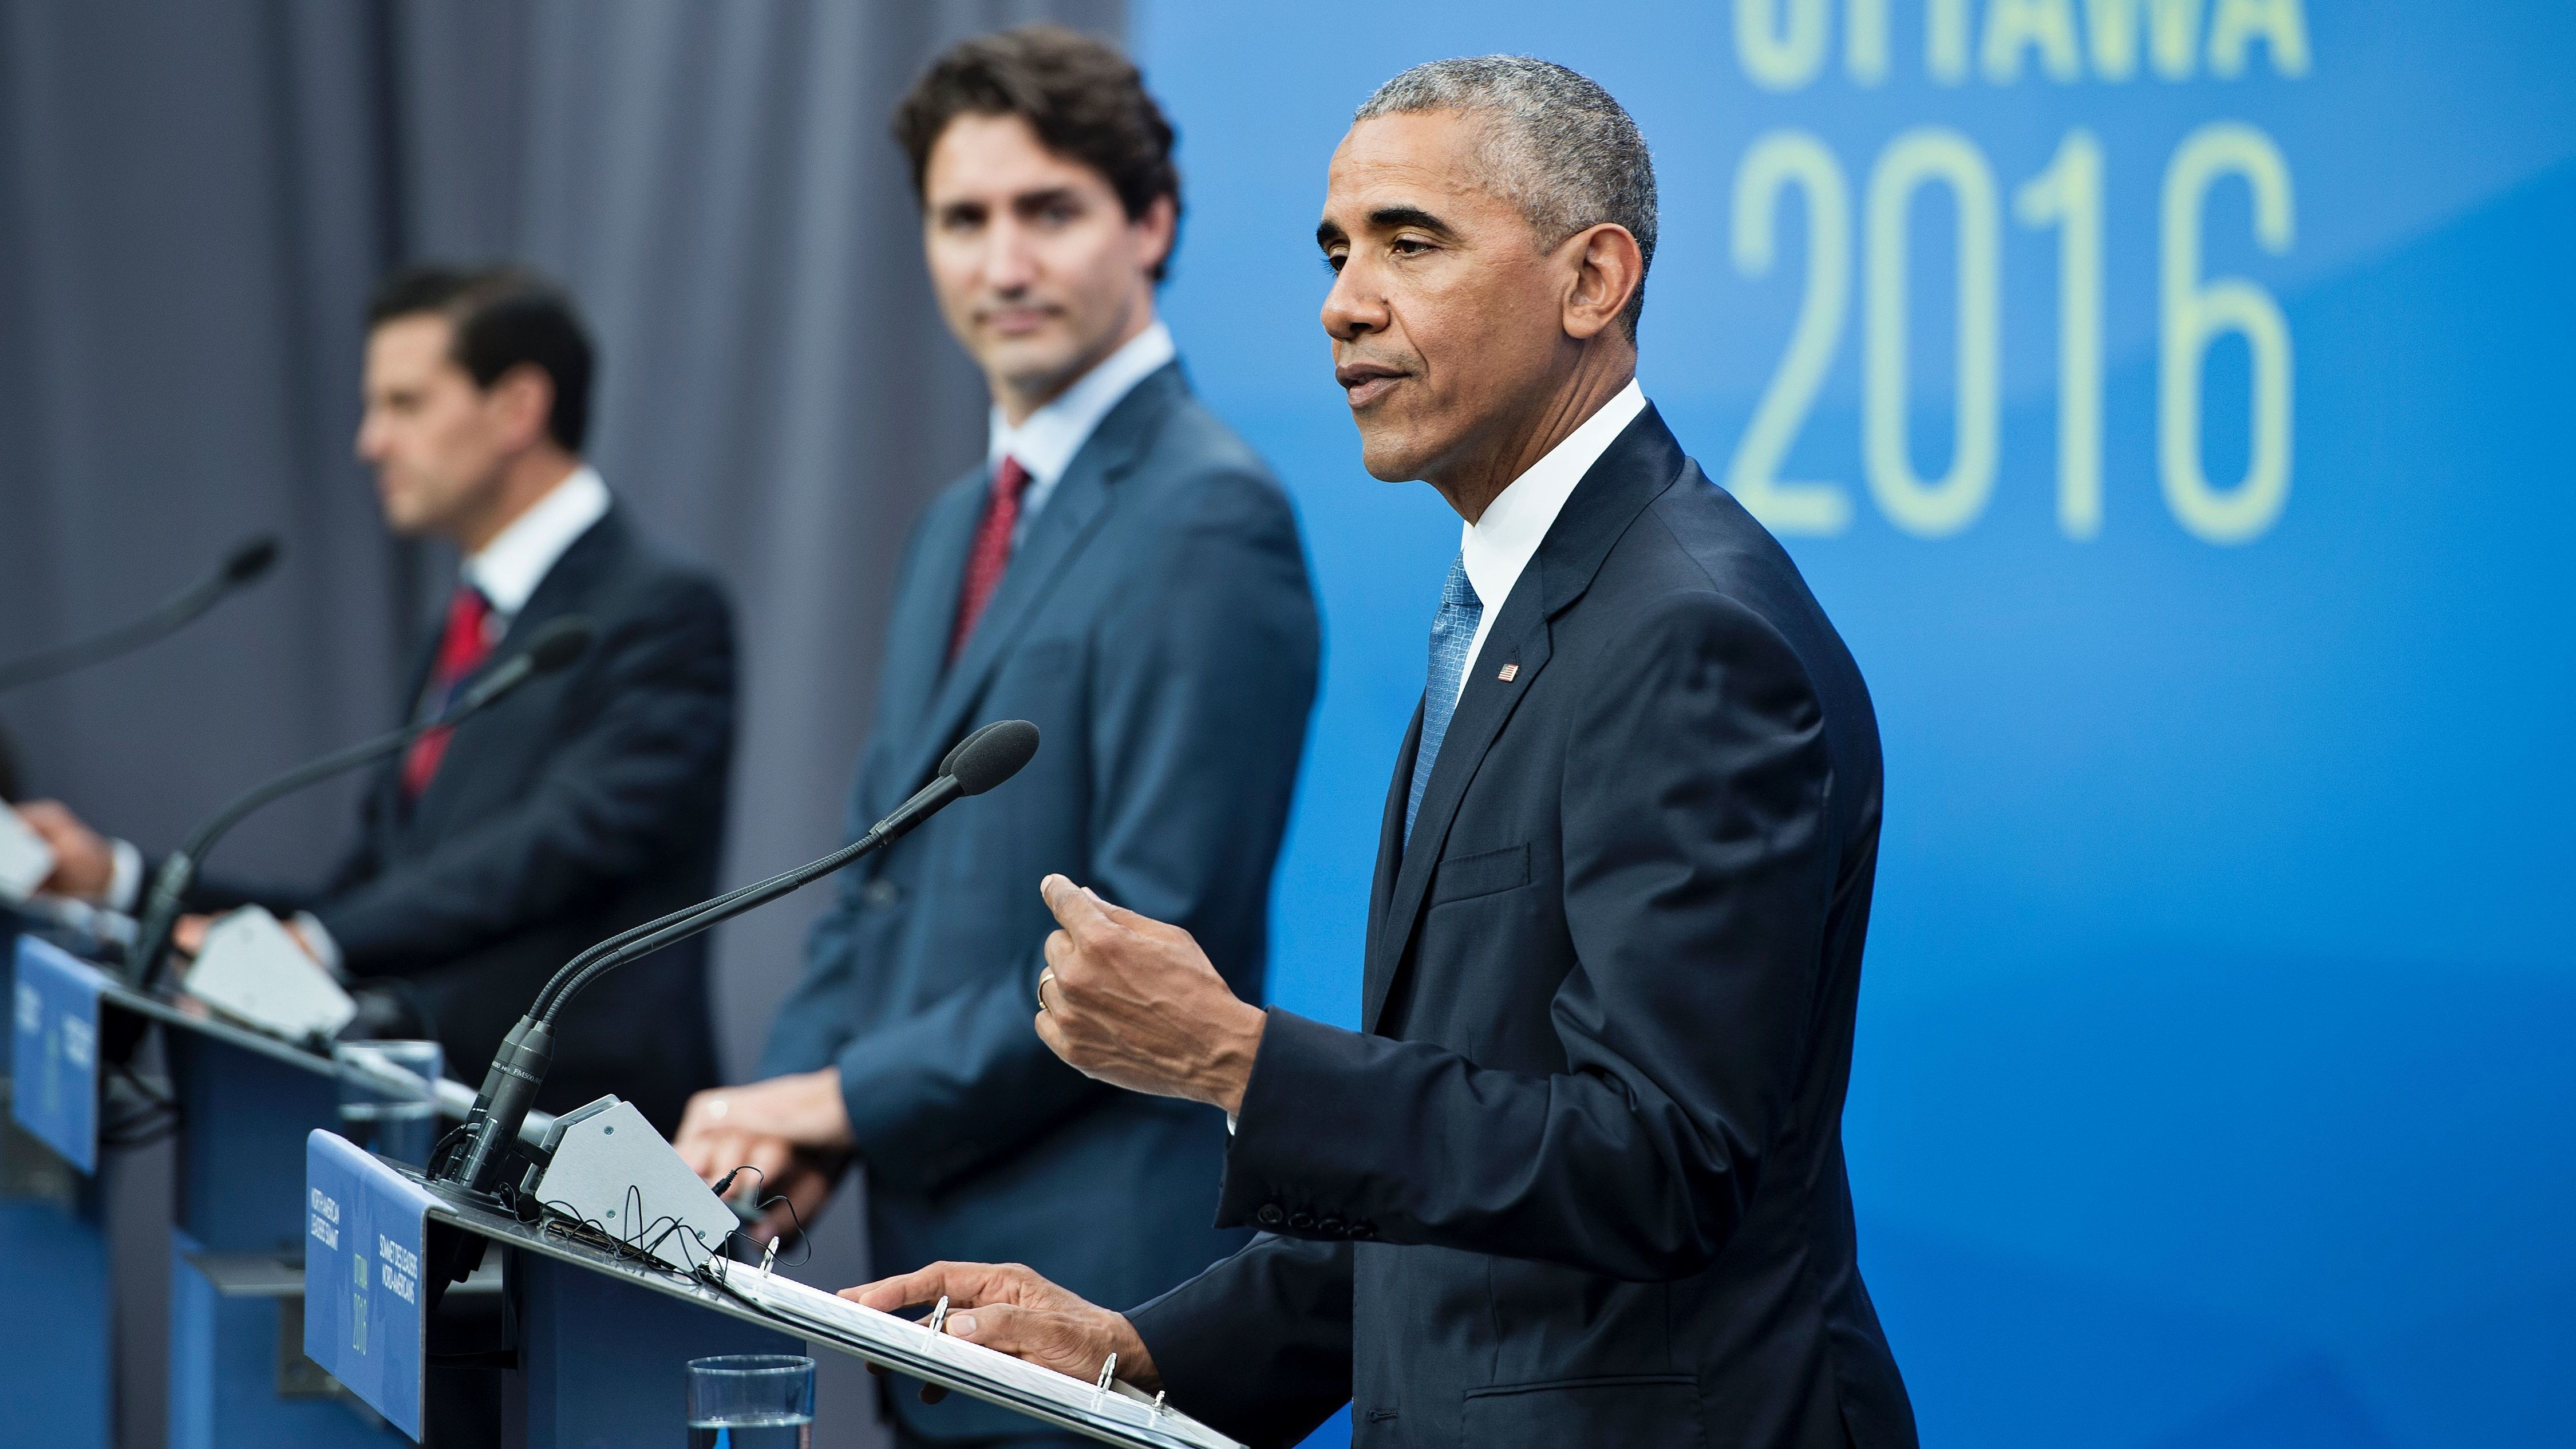 (L-R) Mexican President Enrique Pena Nieto, Canadian Prime Minister Justin Trudeau and President Obama held a press conference in Ottawa Wednesday. Brendan Smialowski/AFP/Getty Images